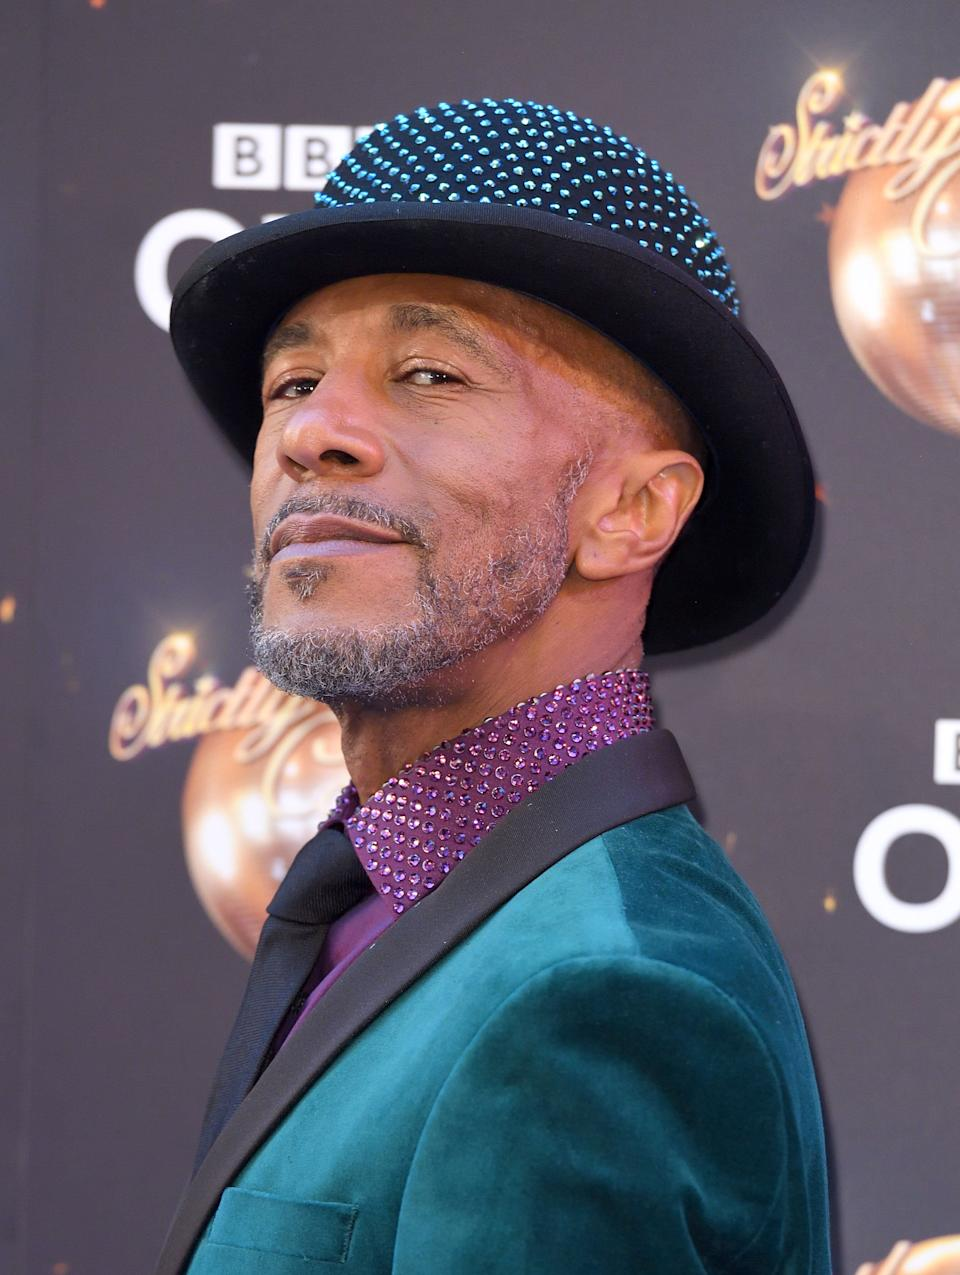 """Red Dwarf star Danny John-Jules got off to a flying start on the series in 2018, but the wheels started to come off when reports emerged in the press accusing him of """"bullying"""" his partner, Amy Dowden.<br /><br />Both Danny and Amy denied this was the case, with the actor accusing the journalists behind the claims of being racist.<br /><br />After leaving the show, he suggested there was a """"vendetta"""" against him, later accusing the BBC of playing a part by """"creating stories about him"""" for the press.<br /><br />The BBC was quick to dismiss this suggestion, insisting they were """"categorically untrue""""."""